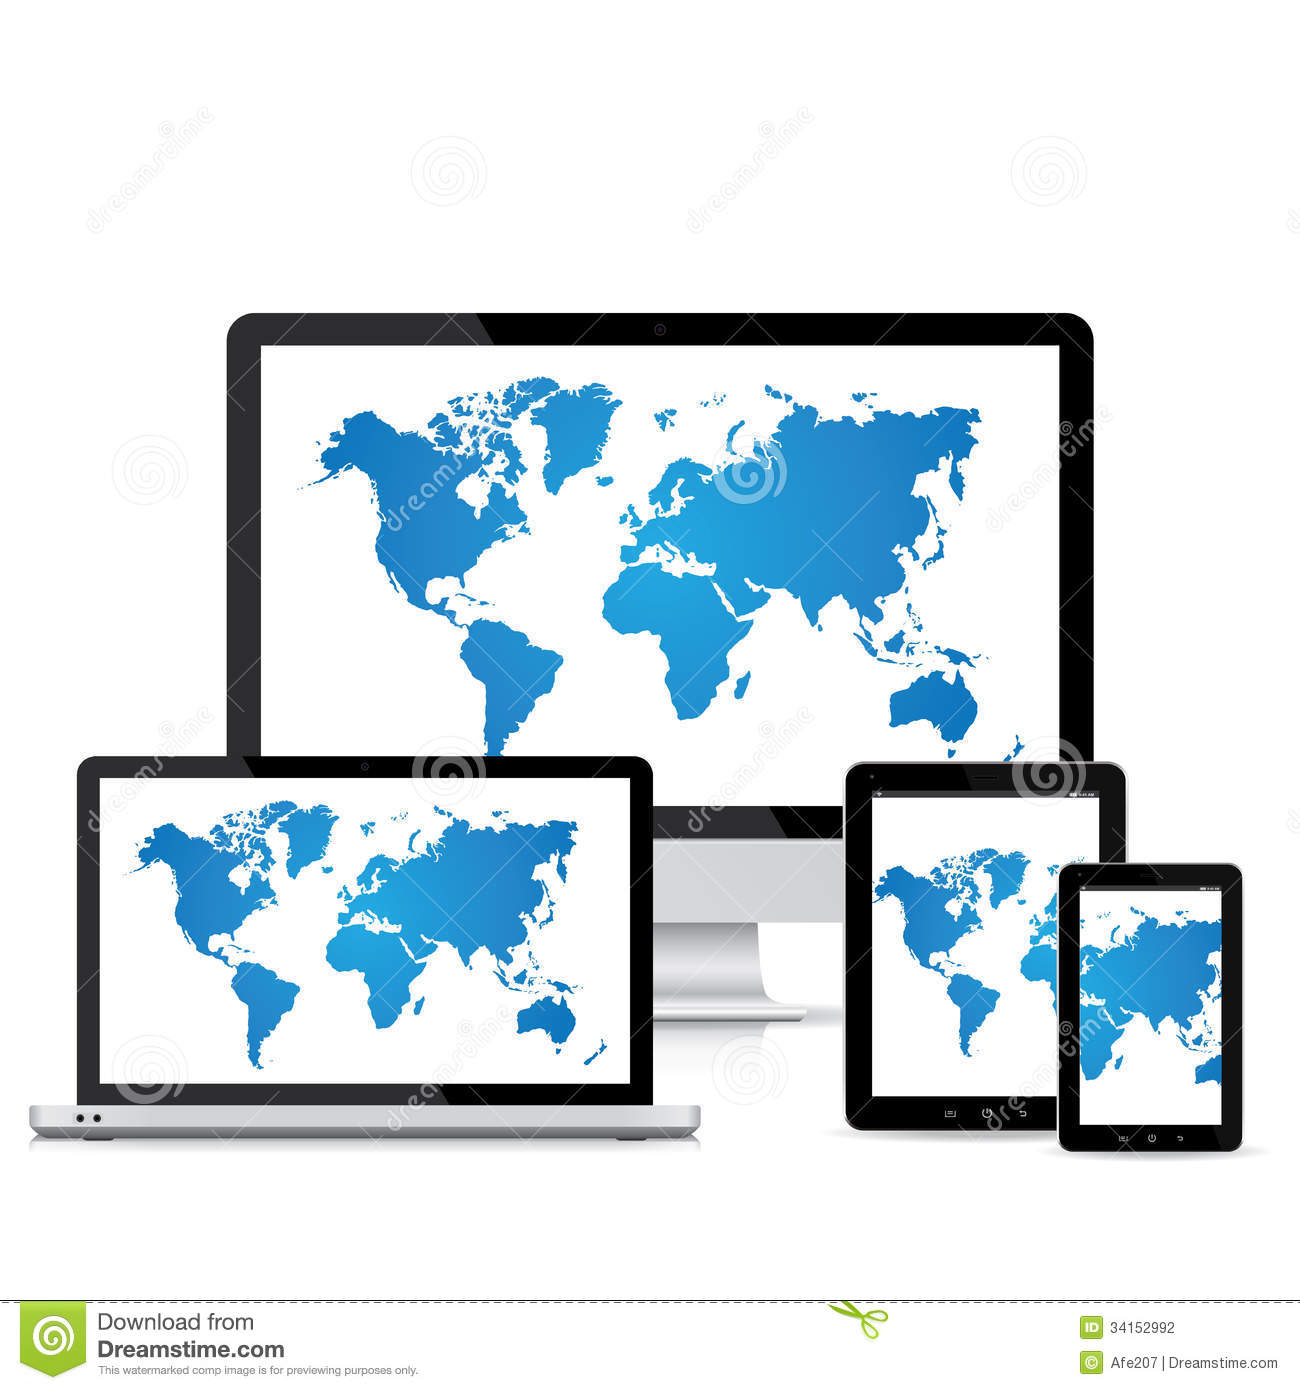 Popular full responsive web design electronic devices vector